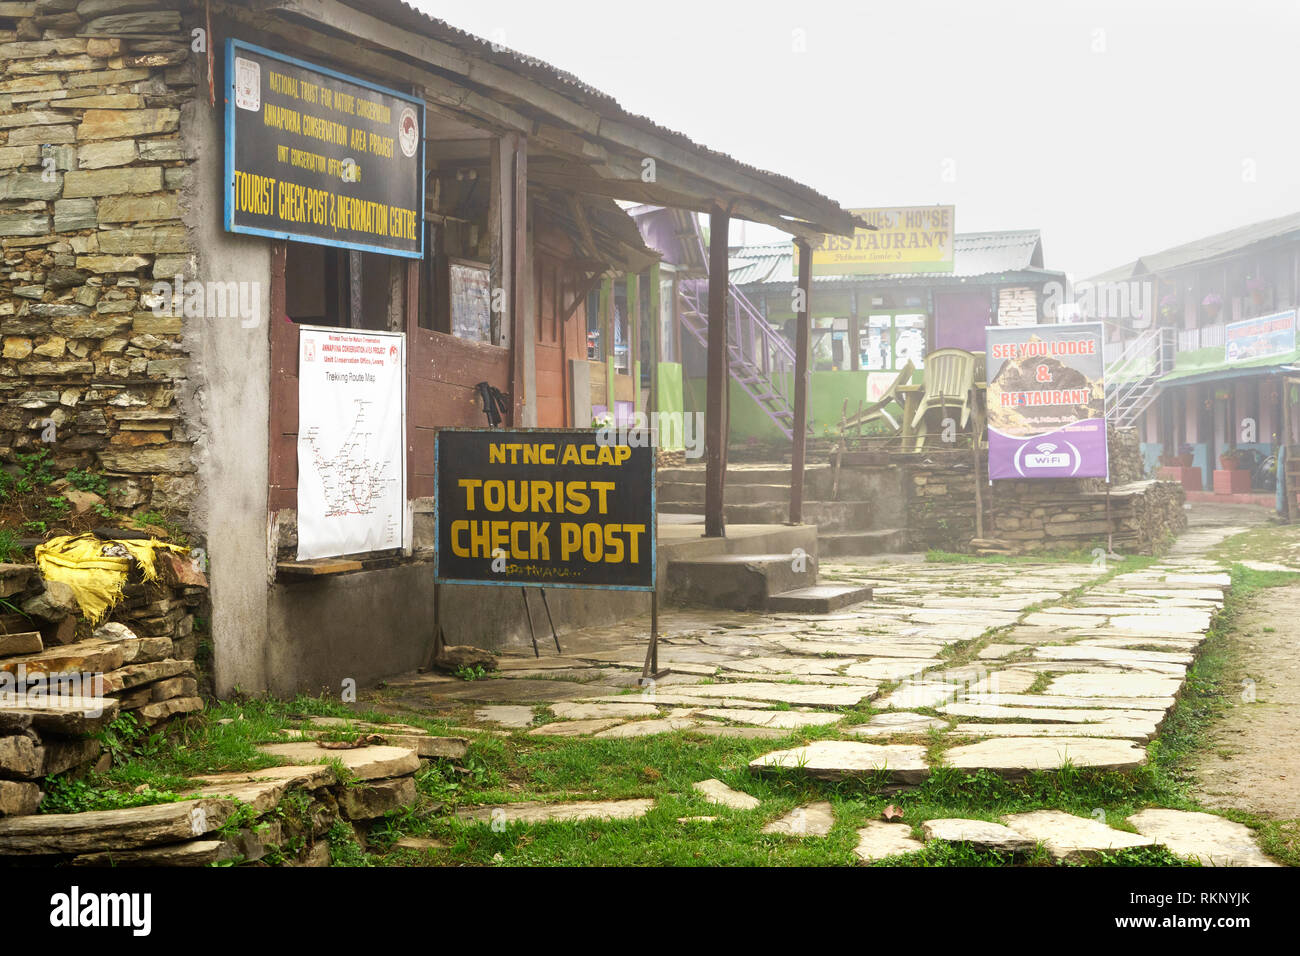 Tourist check post and information center  in the village of Pothana, Annapurna region, Nepal. - Stock Image